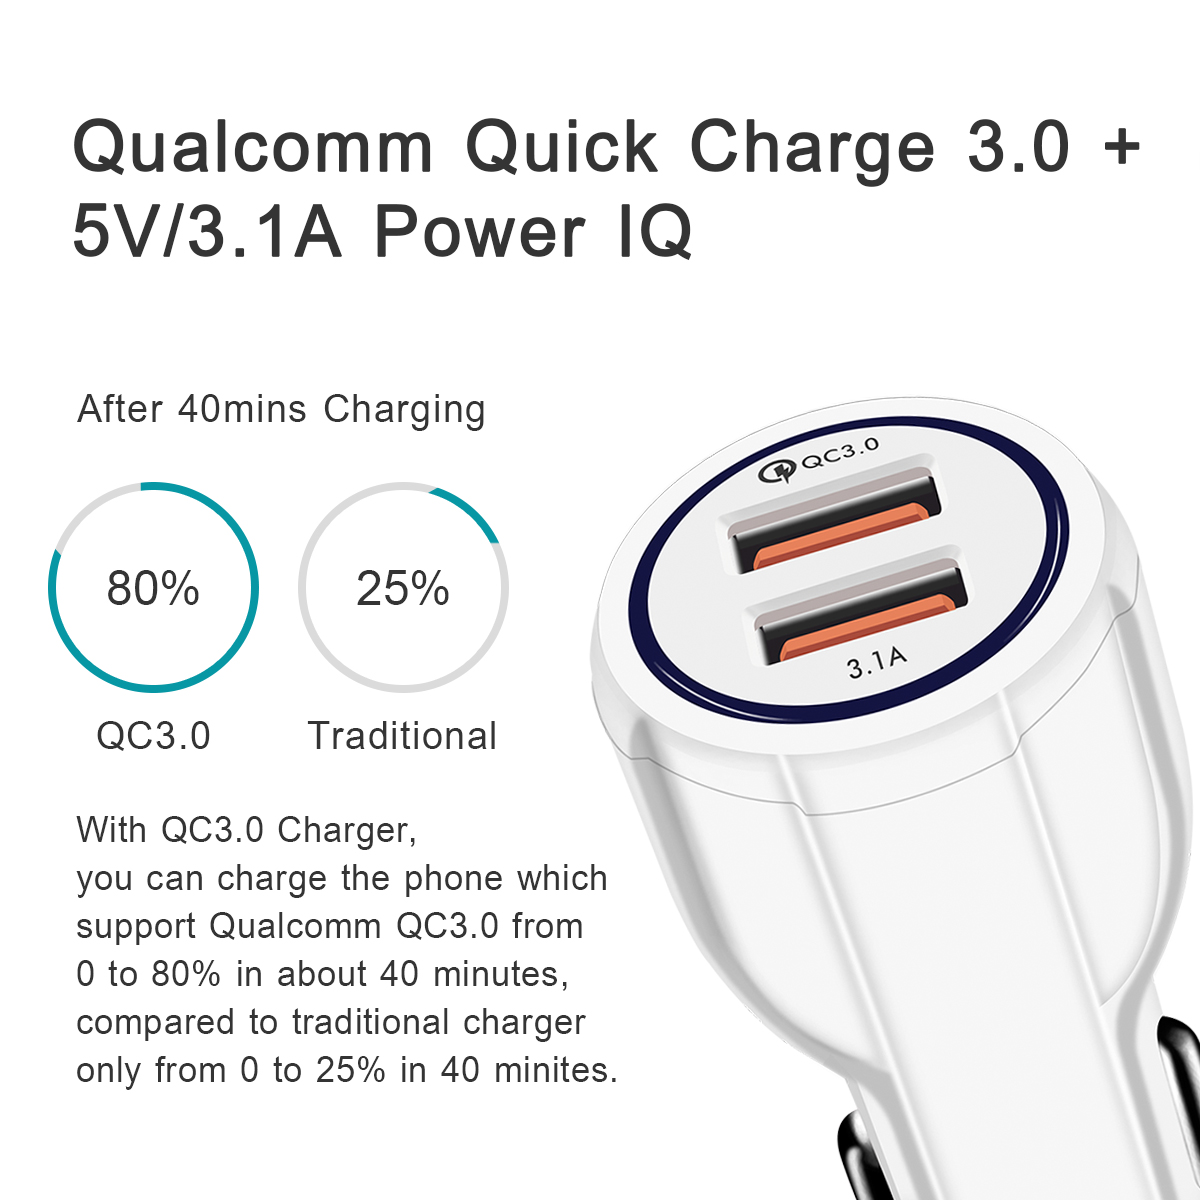 HTB1feqDgVmWBuNjSspdq6zugXXaN - Quick Charge 3.0 Car Charger For Mobile Phone Dual Usb Car Charger Qualcomm Qc 3.0 Fast Charging Adapter Mini Usb Car Charger